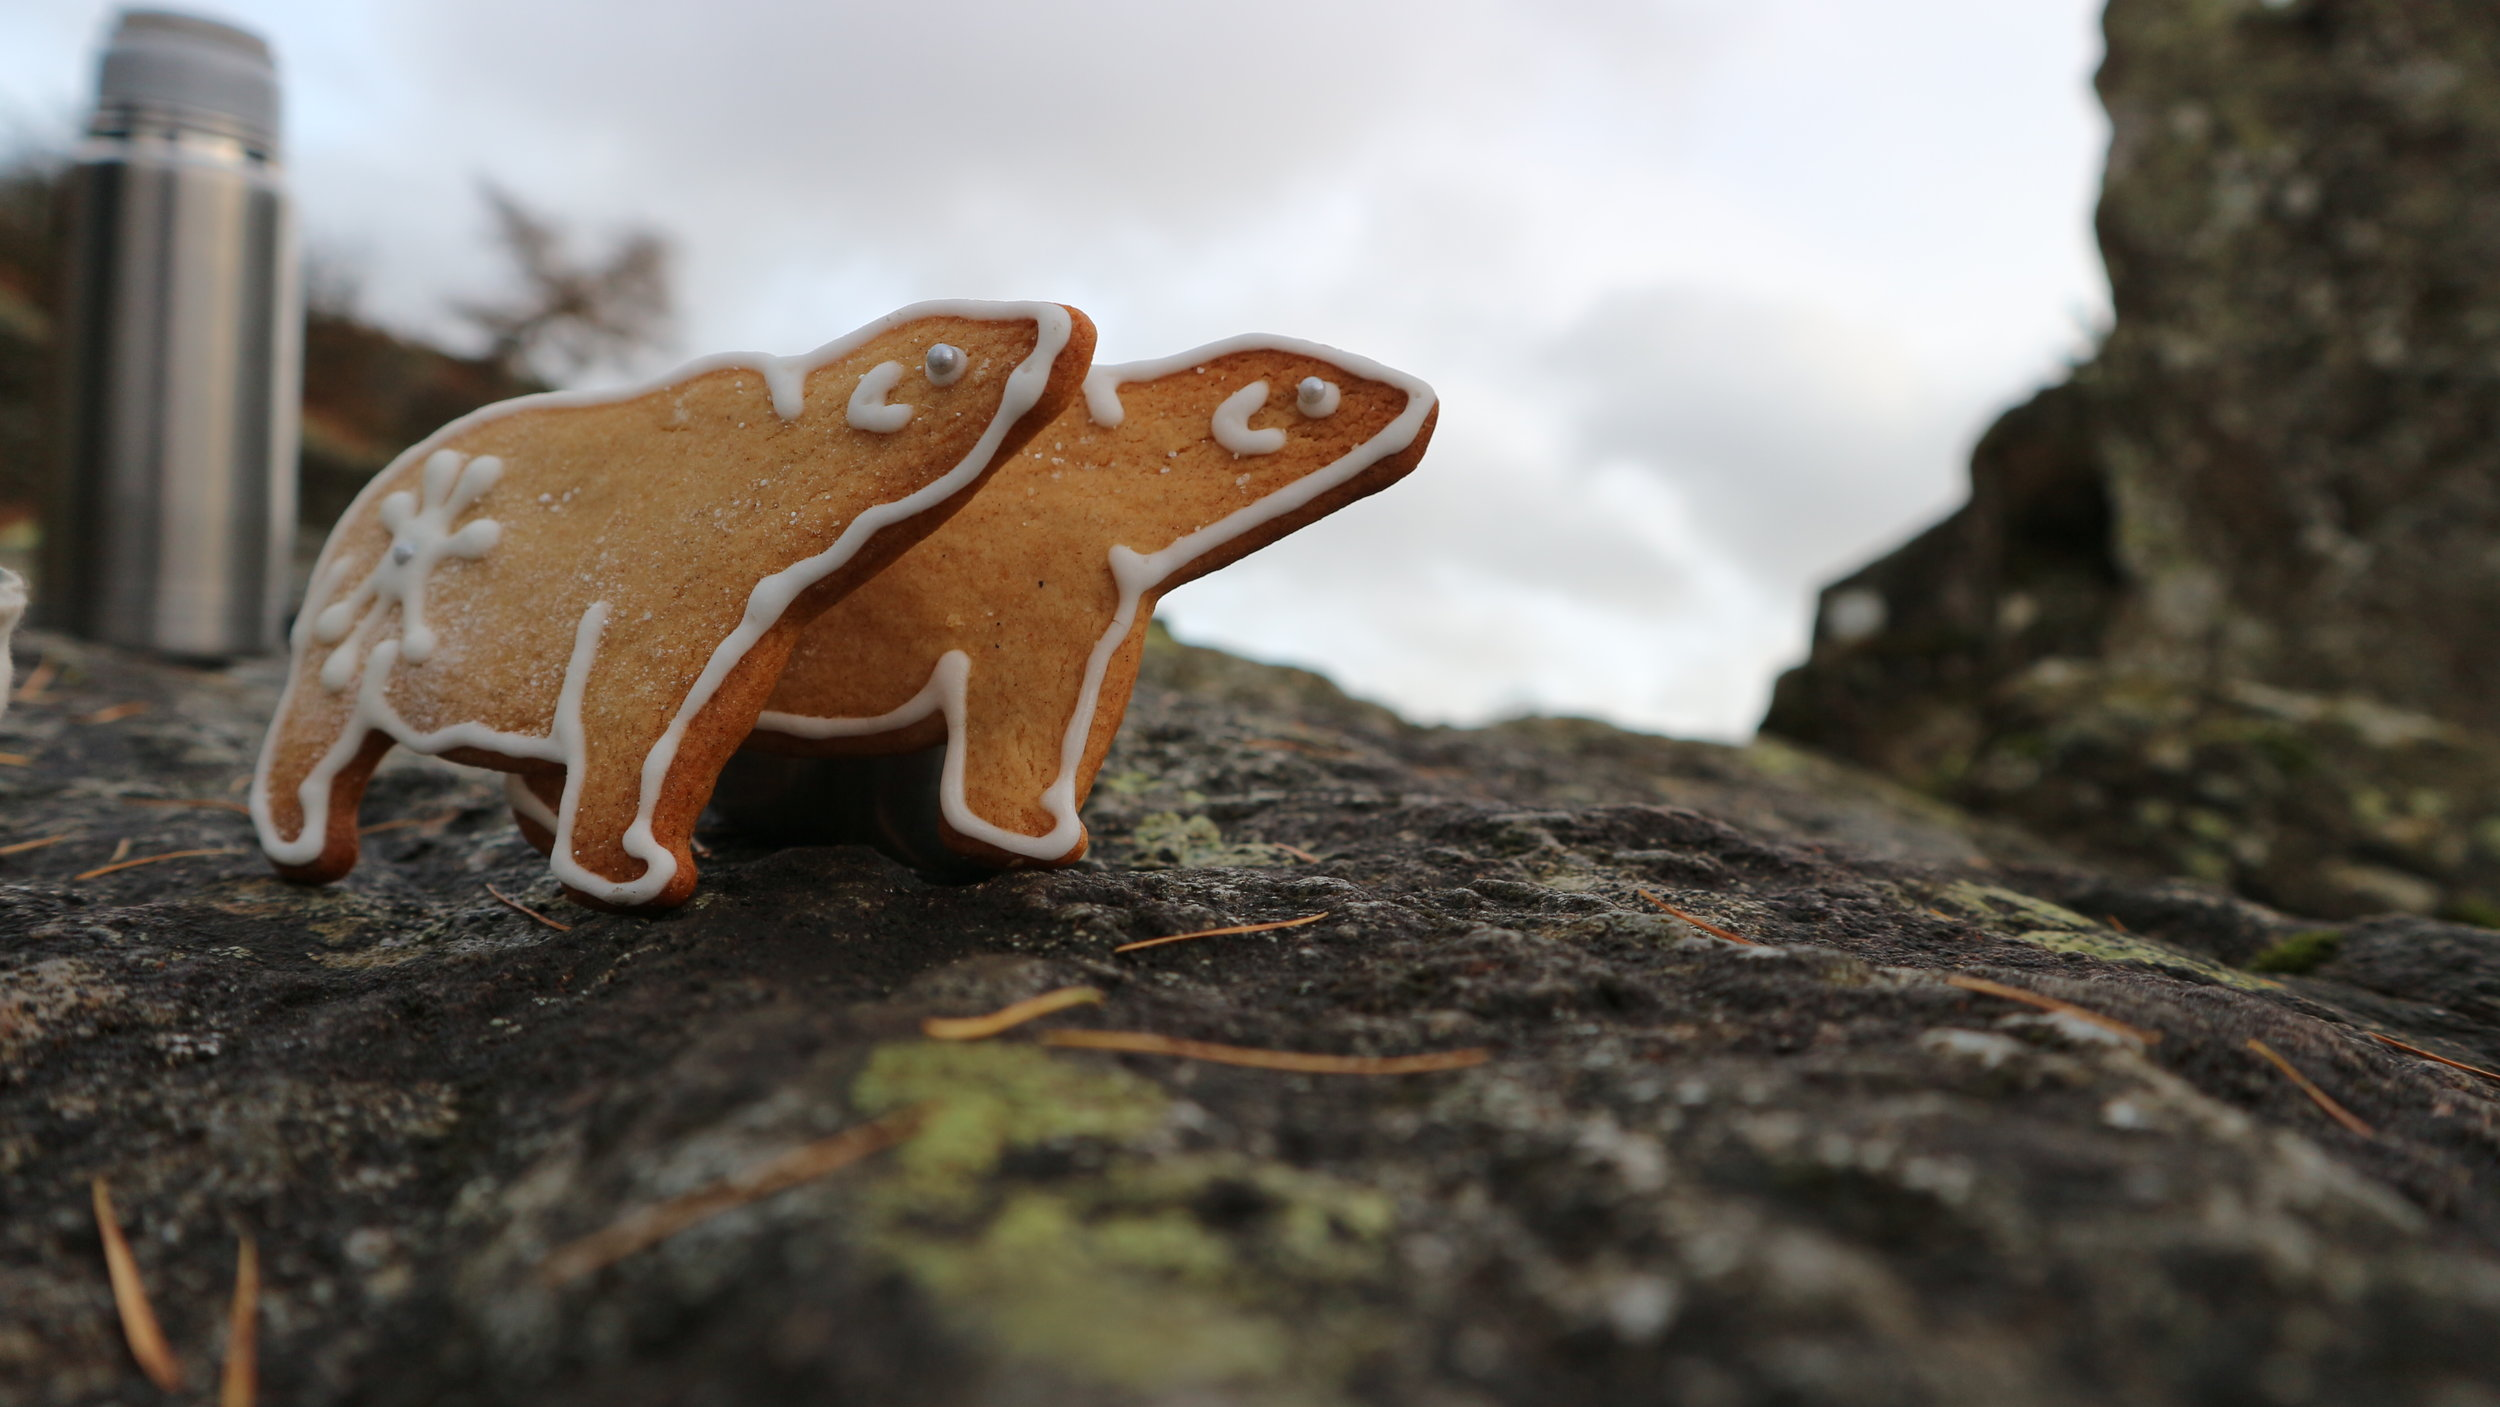 Gingerbread bears ...they didn't make it back from the walk up to Alcock Tarn.